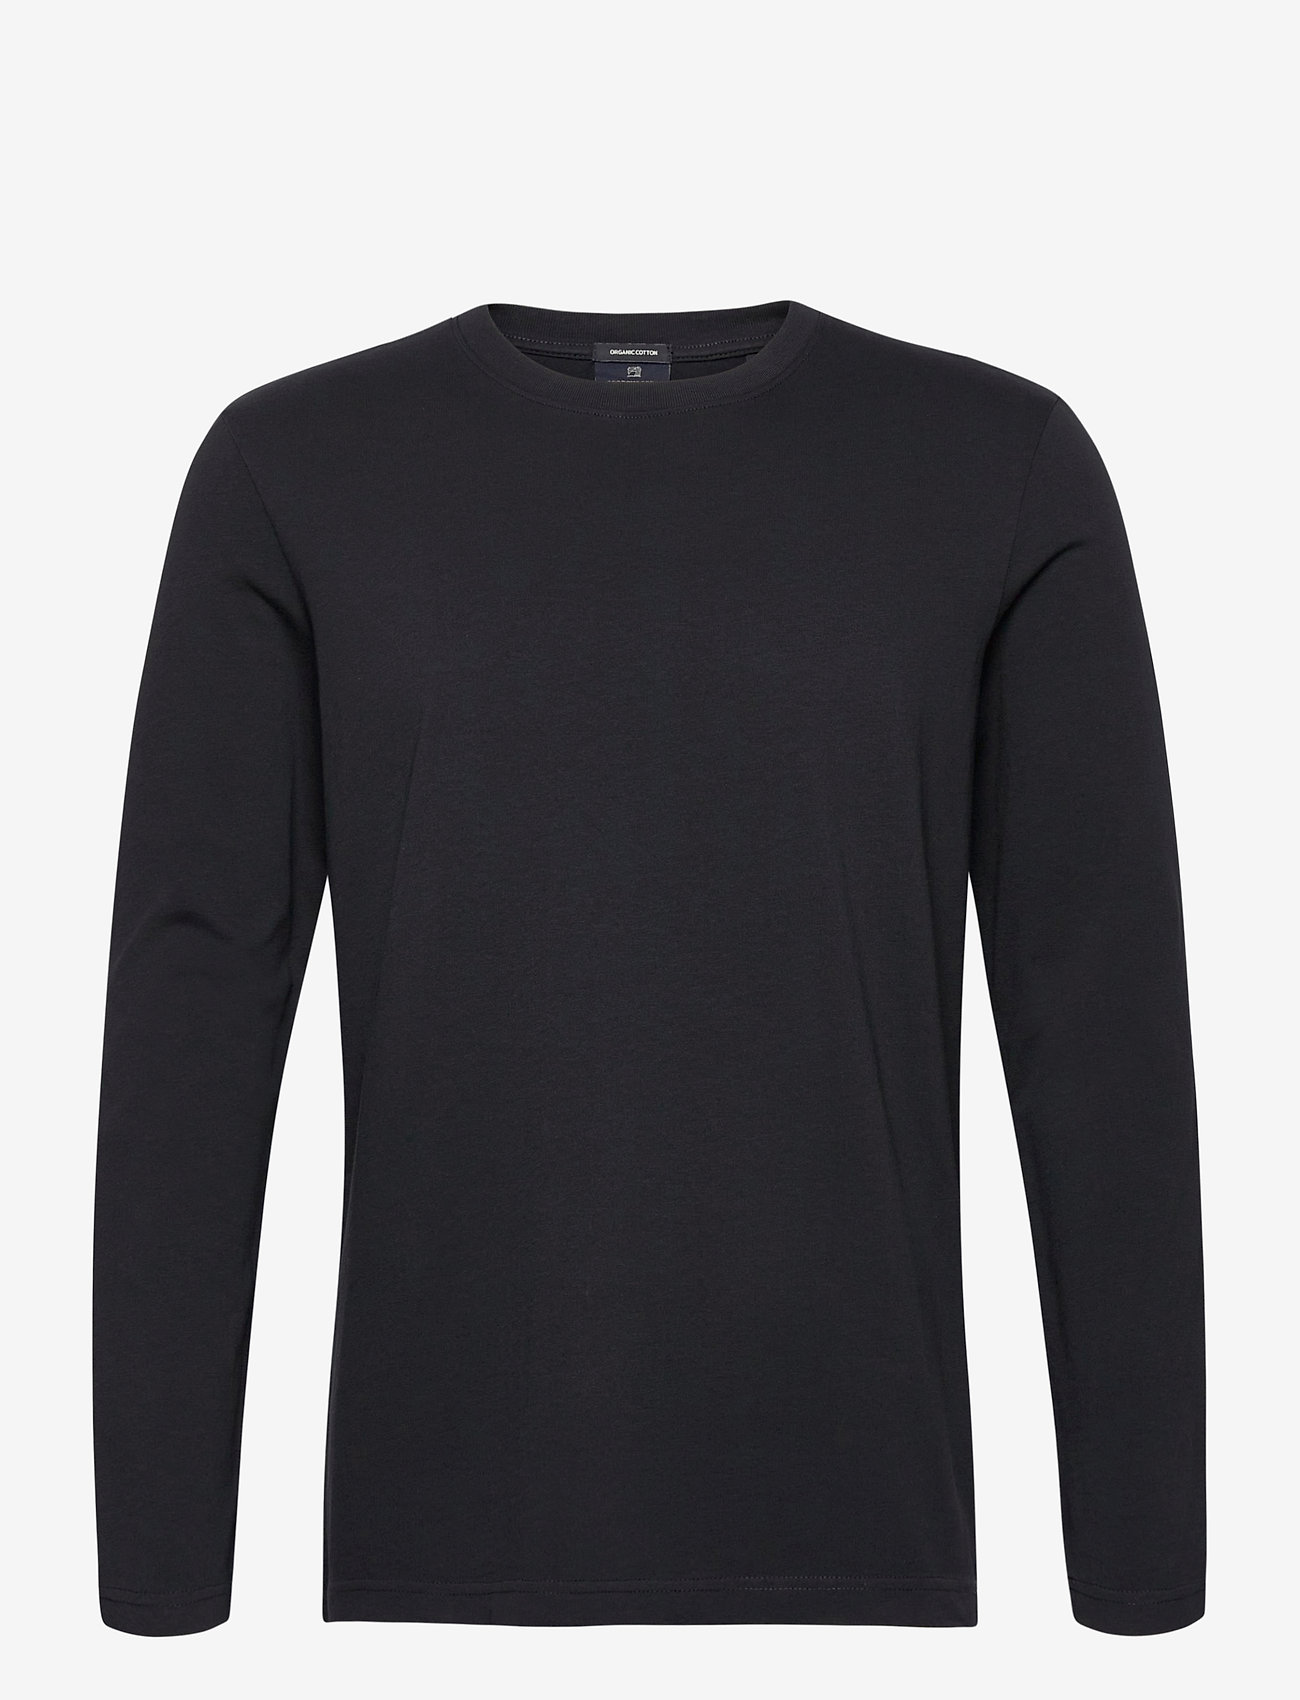 Scotch & Soda - Longsleeve tee in heavy organic cotton - basic t-shirts - antra - 0